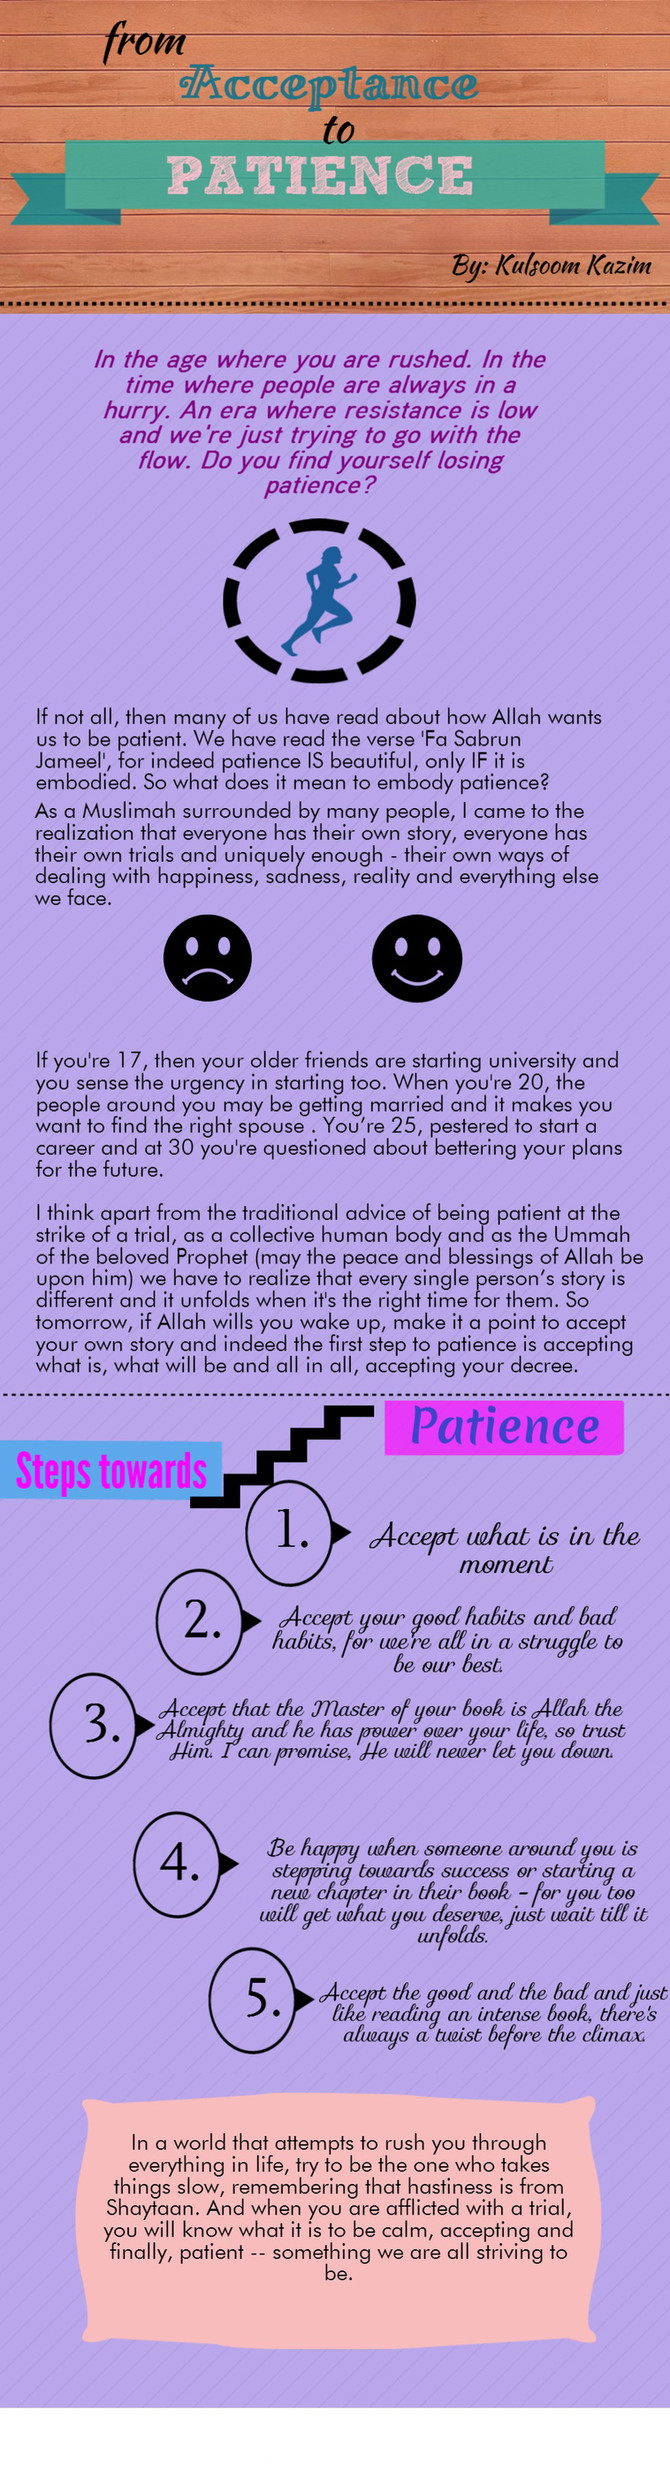 From Acceptance to Patience